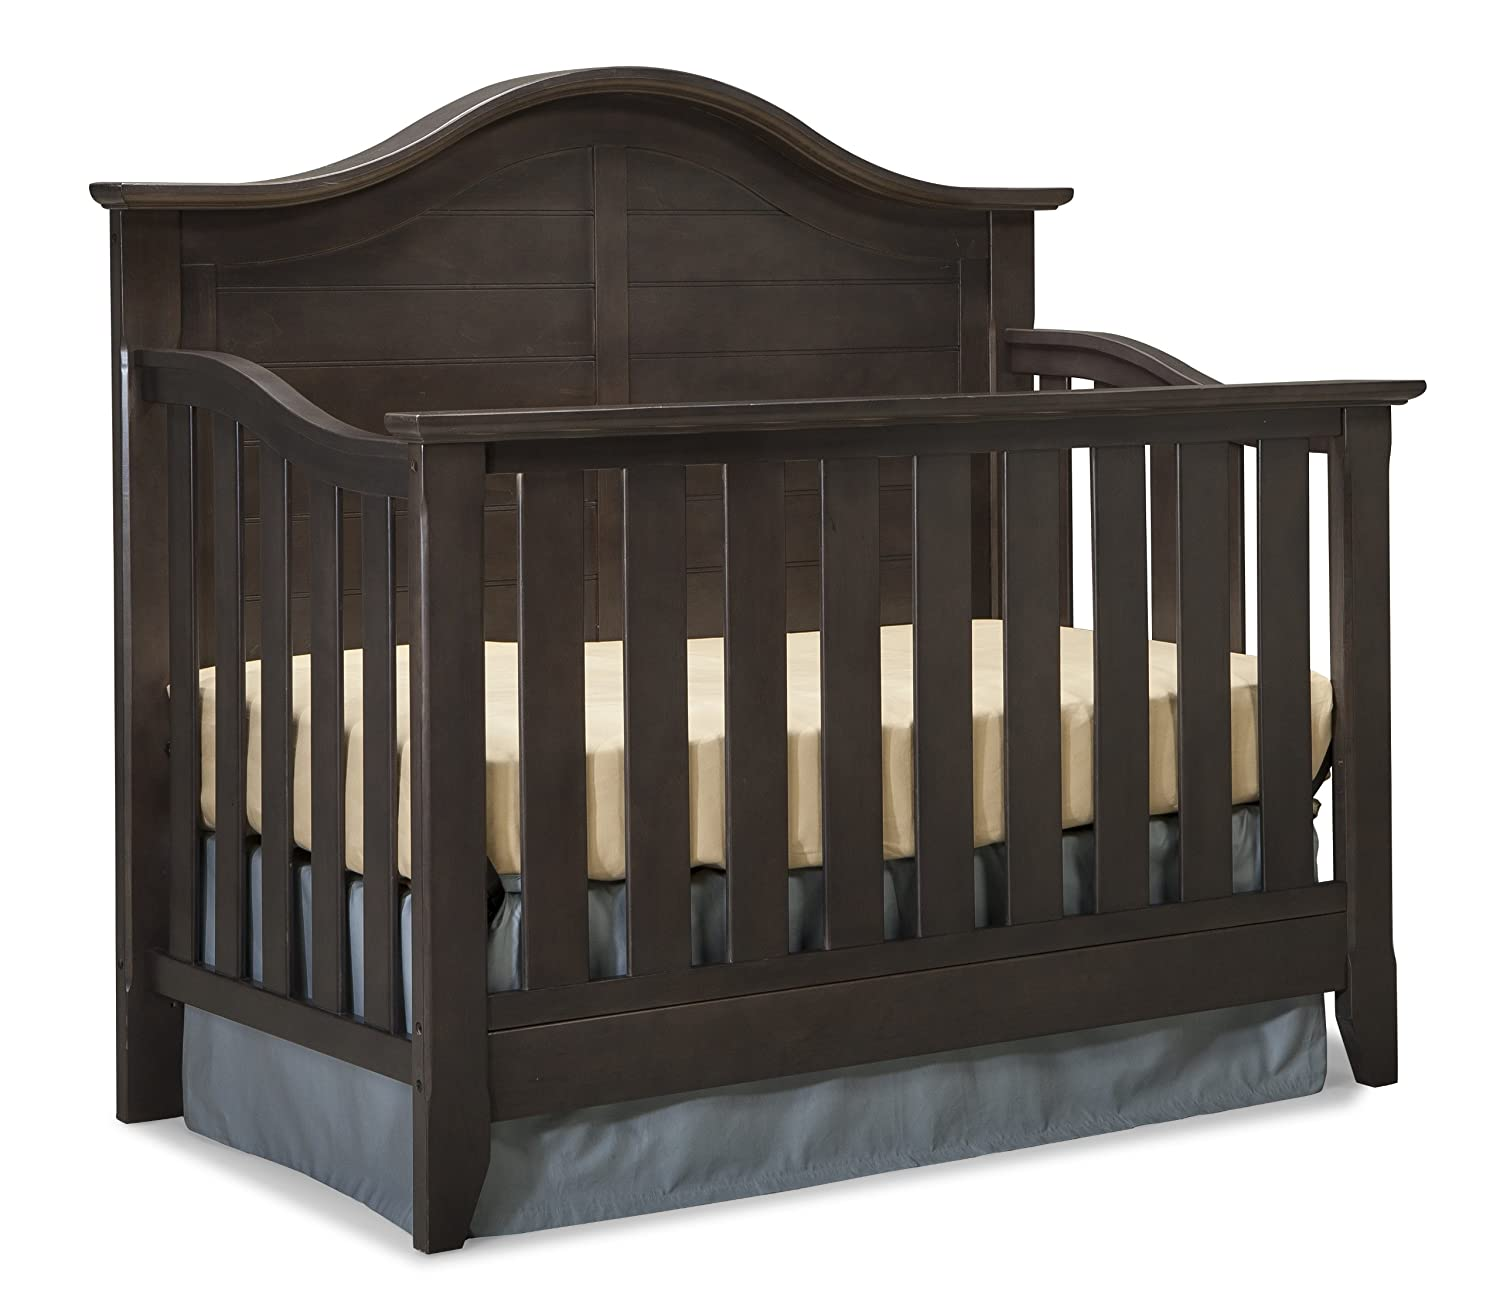 Wonderful Amazon.com : Thomasville Kids Southern Dunes Lifestyle 4 In 1 Convertible  Crib, Espresso : Baby